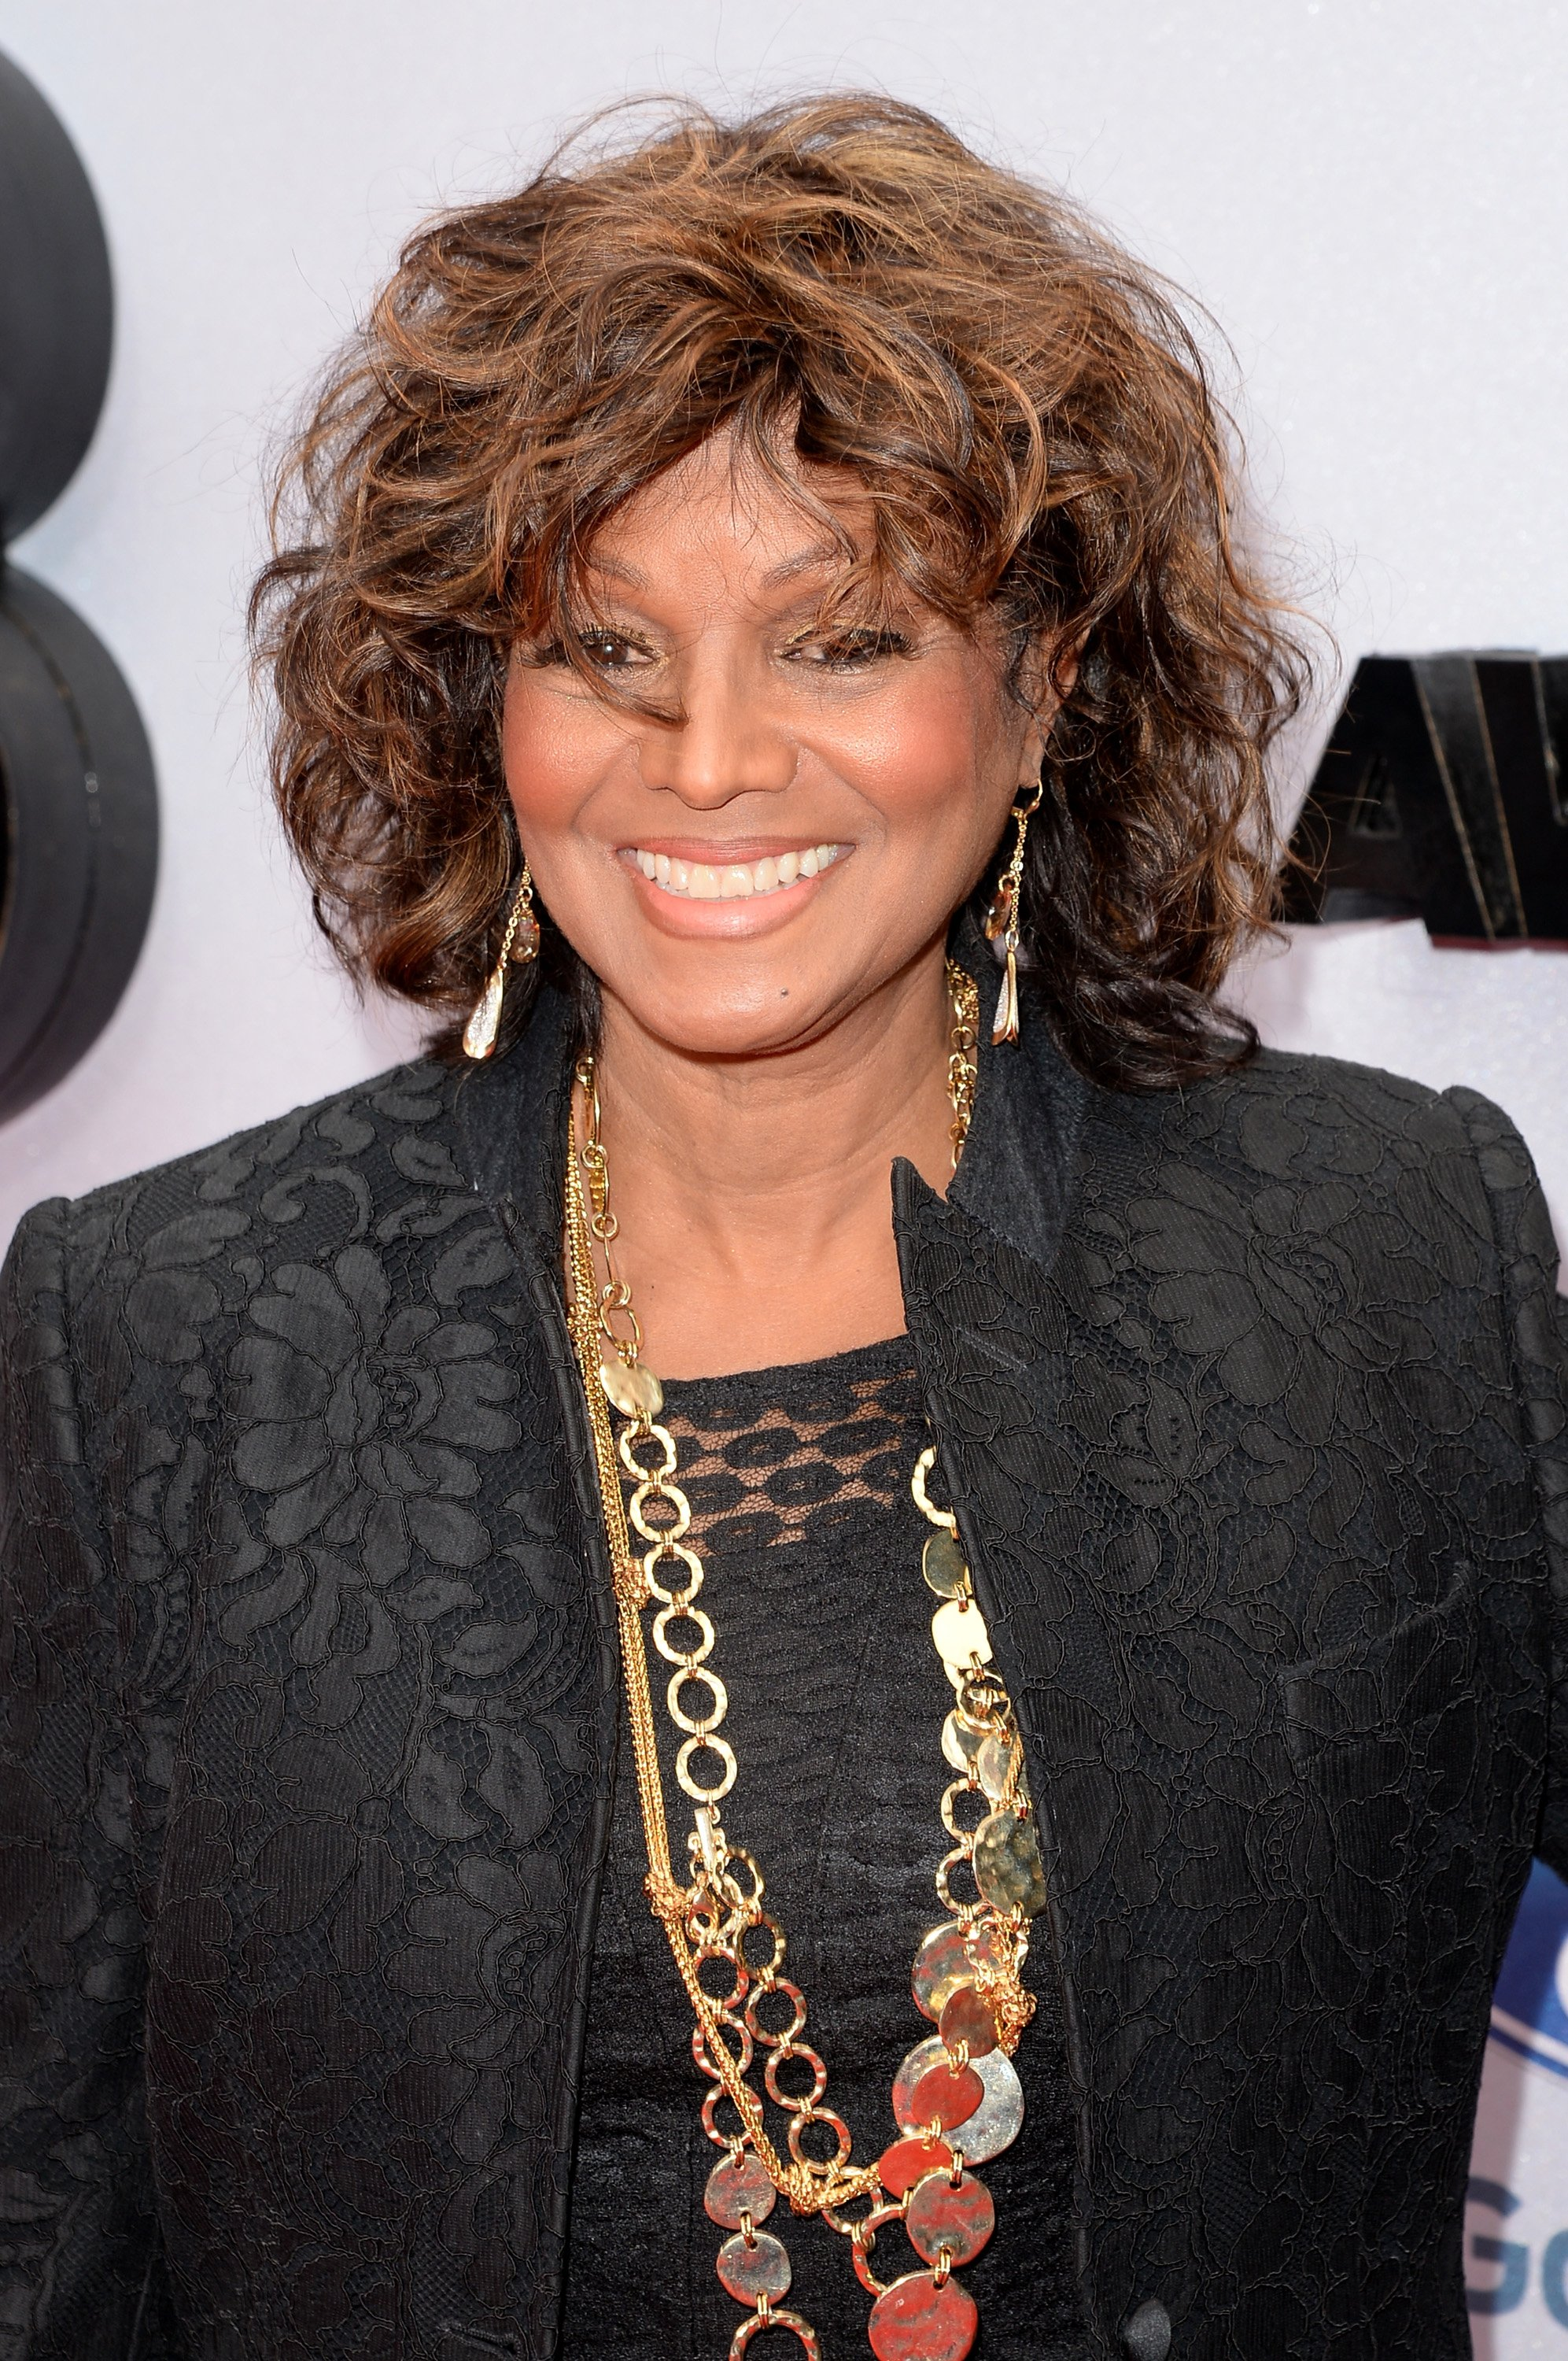 Rebbie Jackson attends the Ford Red Carpet at the 2013 BET Awards at Nokia Theatre L.A. Live on June 30, 2013 in Los Angeles, California | Photo: GettyImages